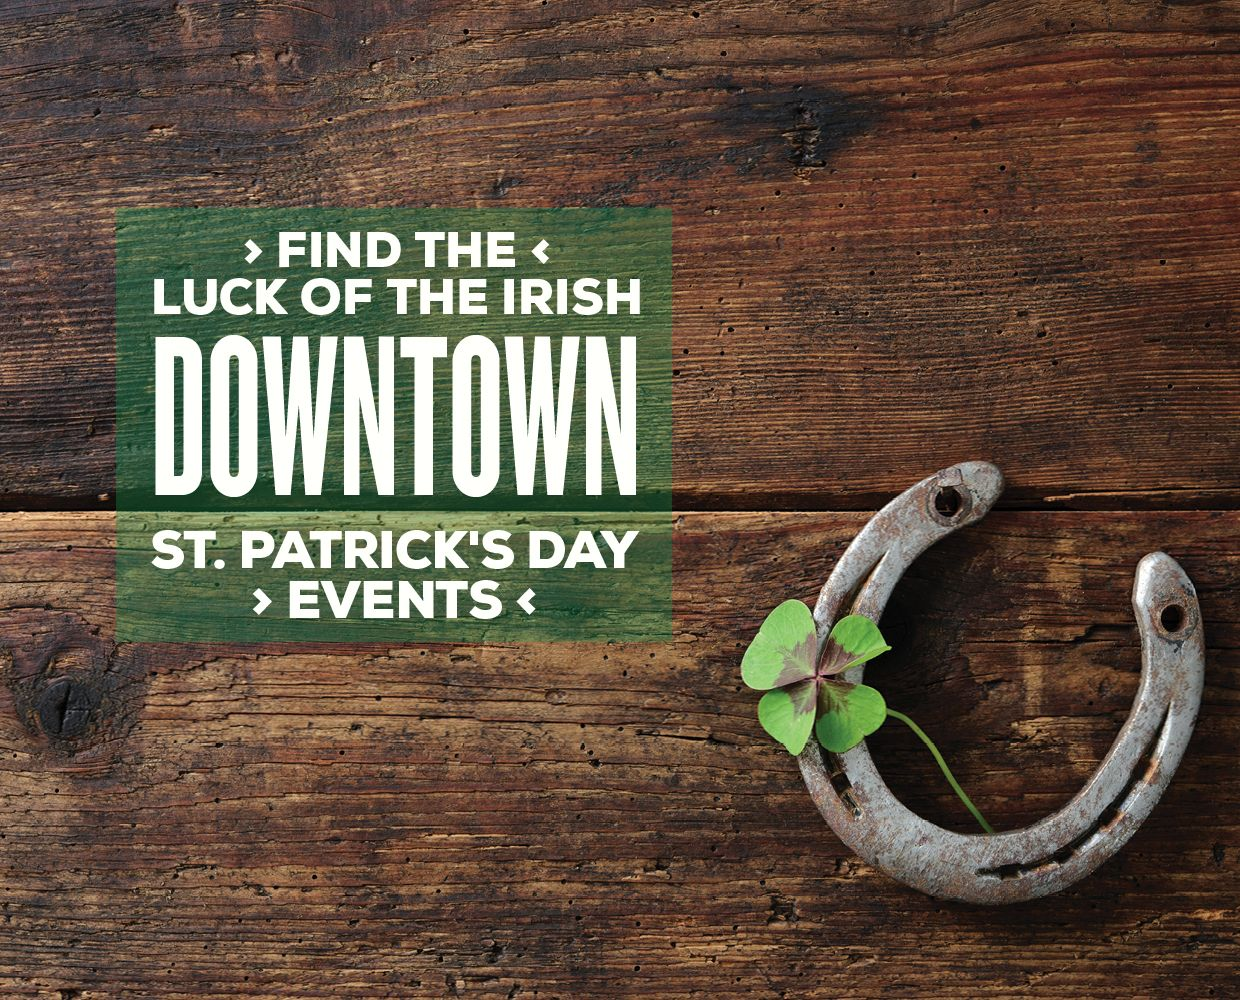 St. Patrick's Day in Downtown Louisville image